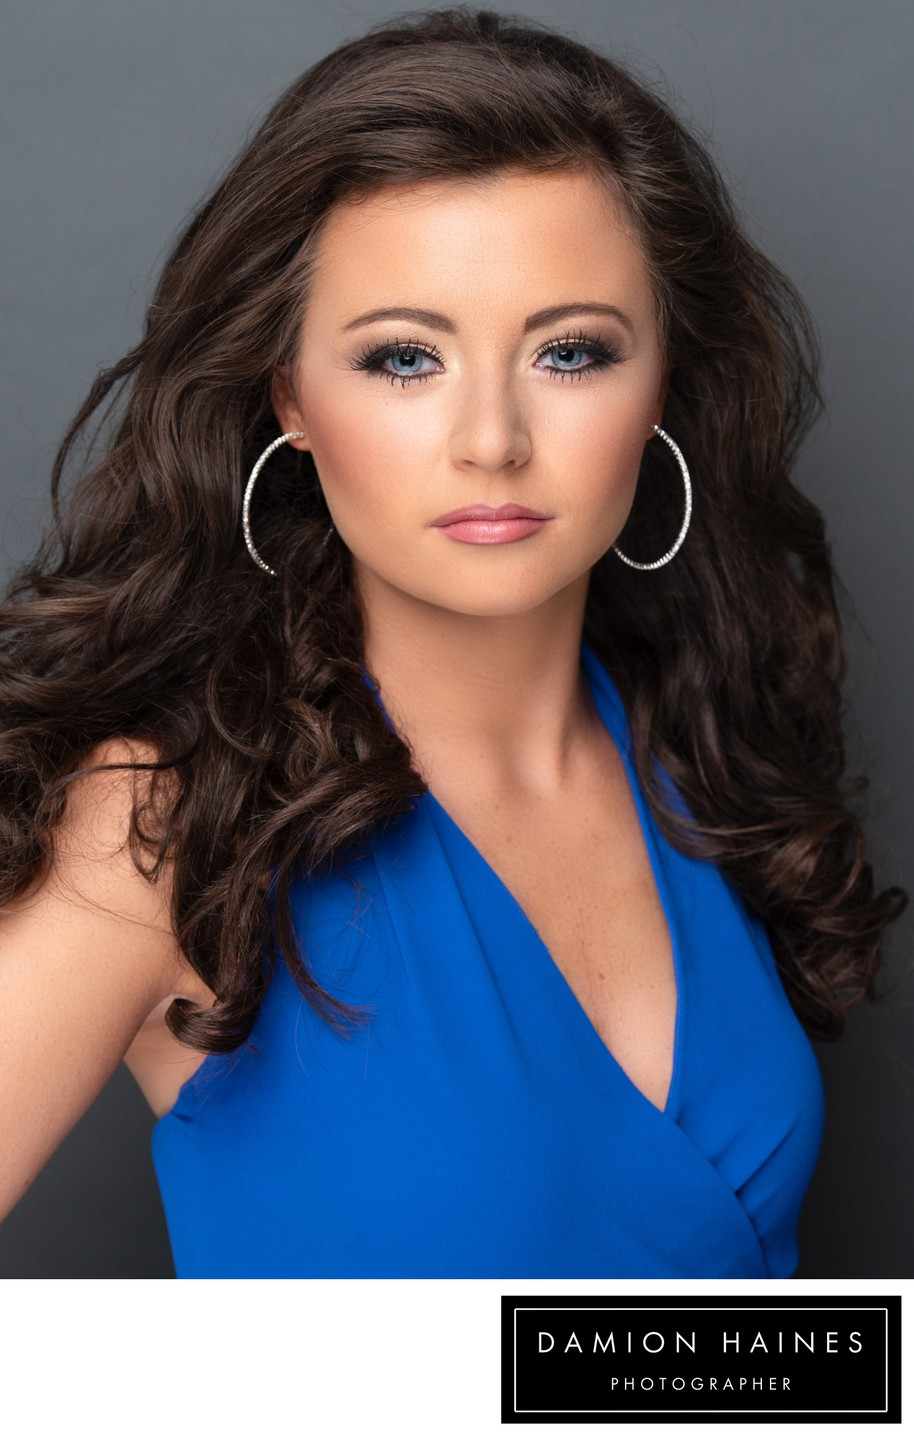 Pageant Queen and Professional Headshots in Baton Rouge